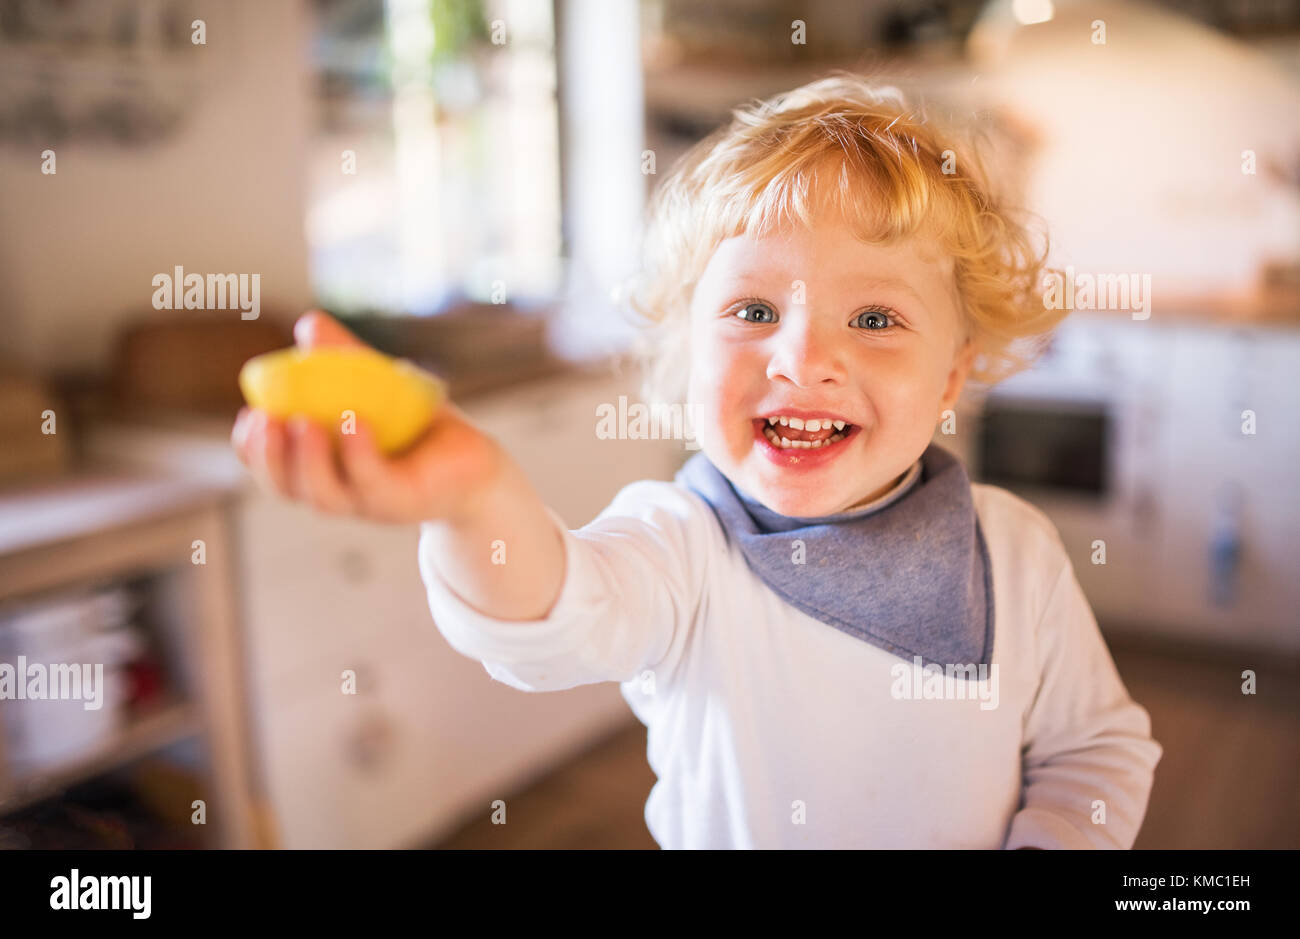 Toddler boy in the kitchen. - Stock Image